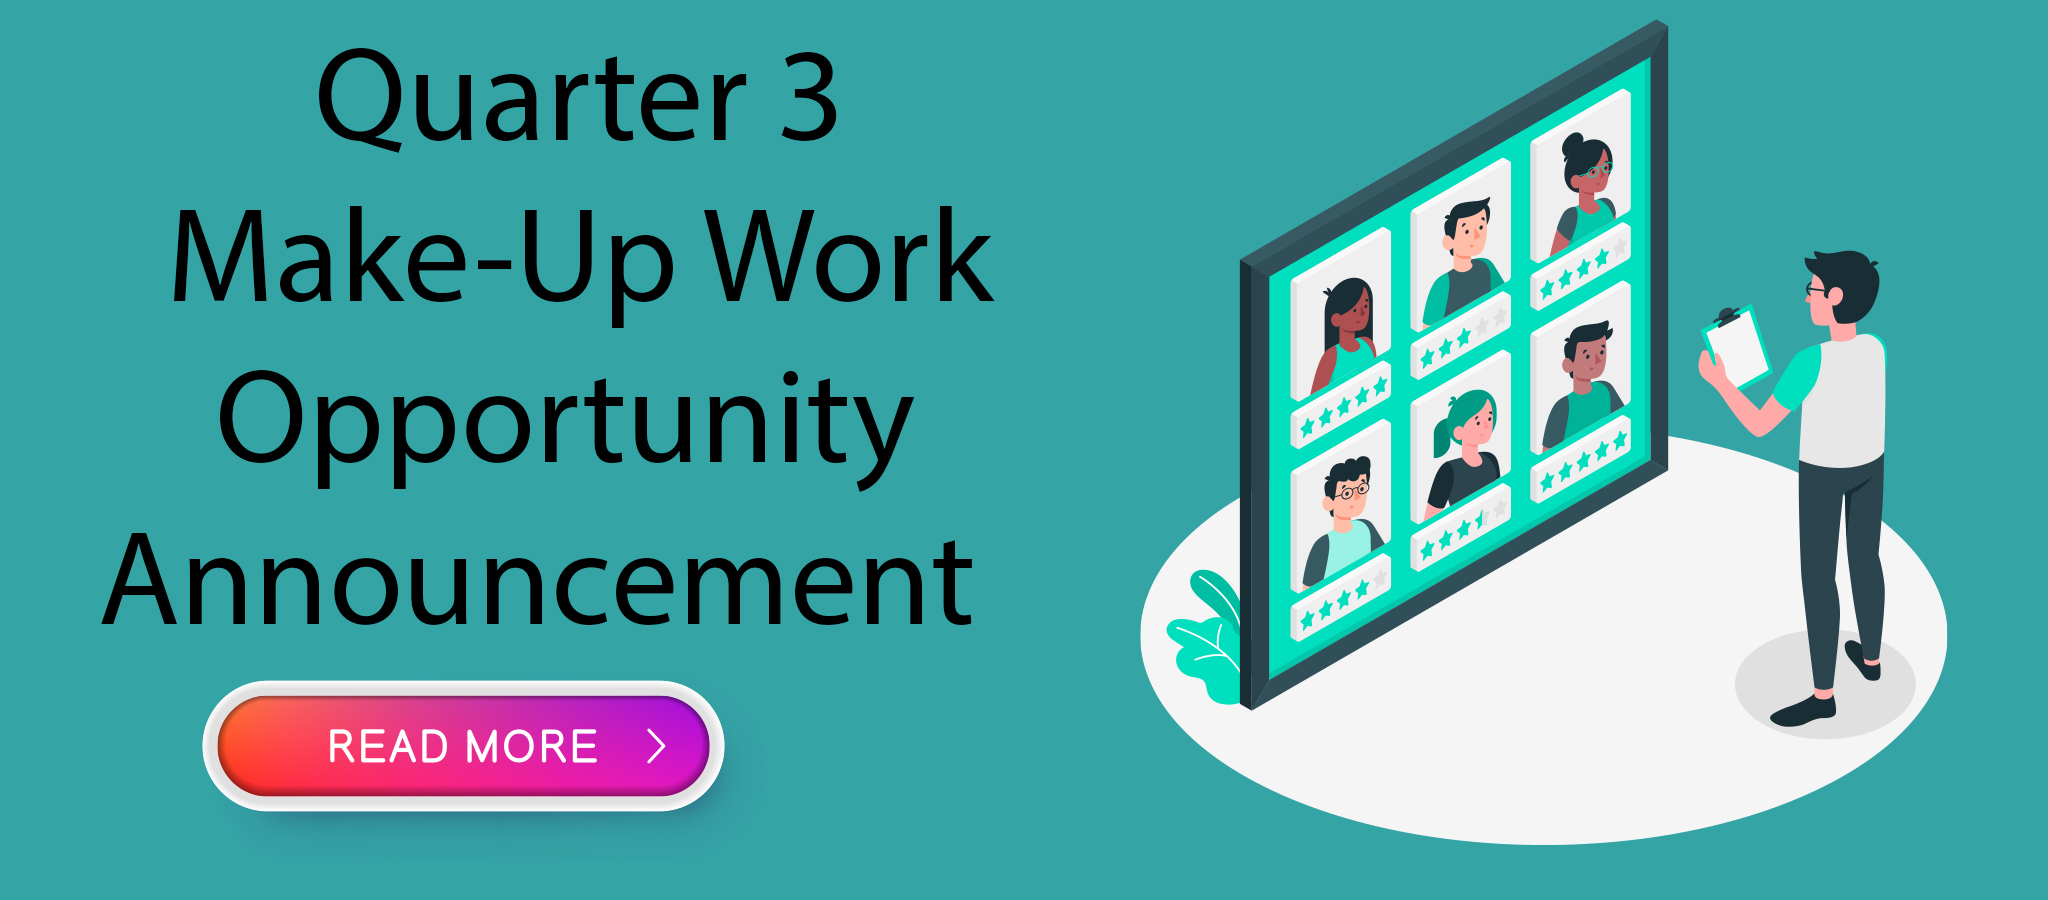 Quarter 3  Make-Up Work  Opportunity